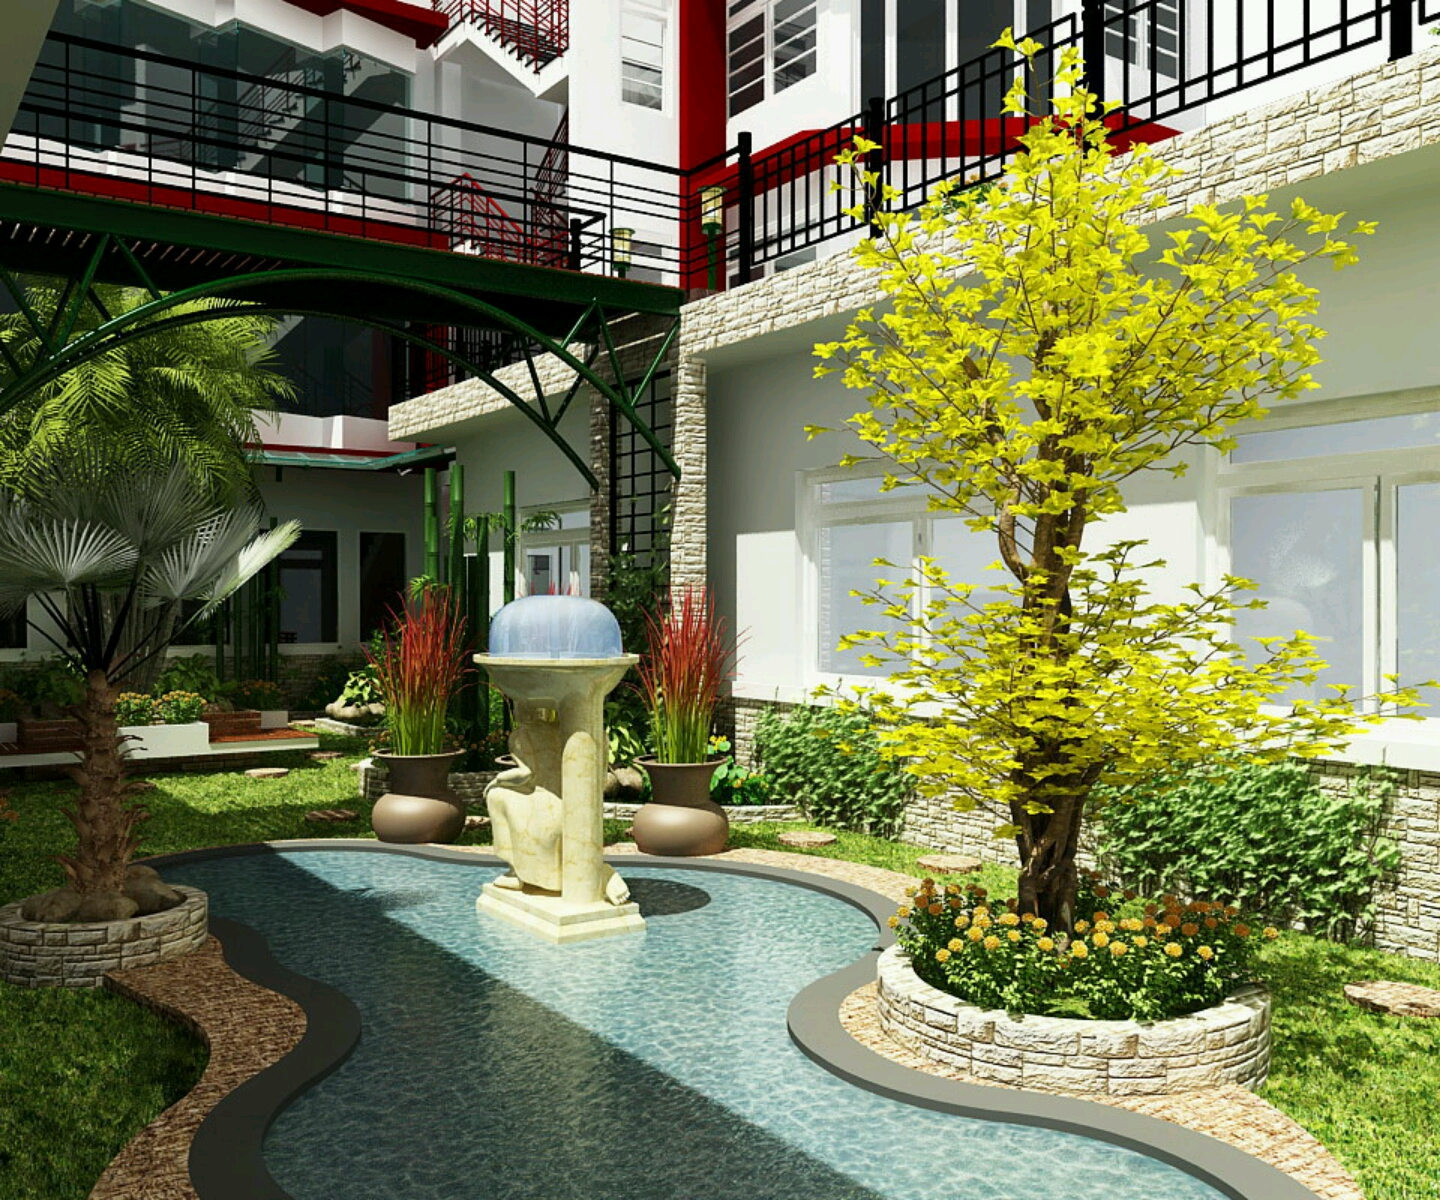 Modern garden design ideas 10 for Contemporary garden designs and ideas